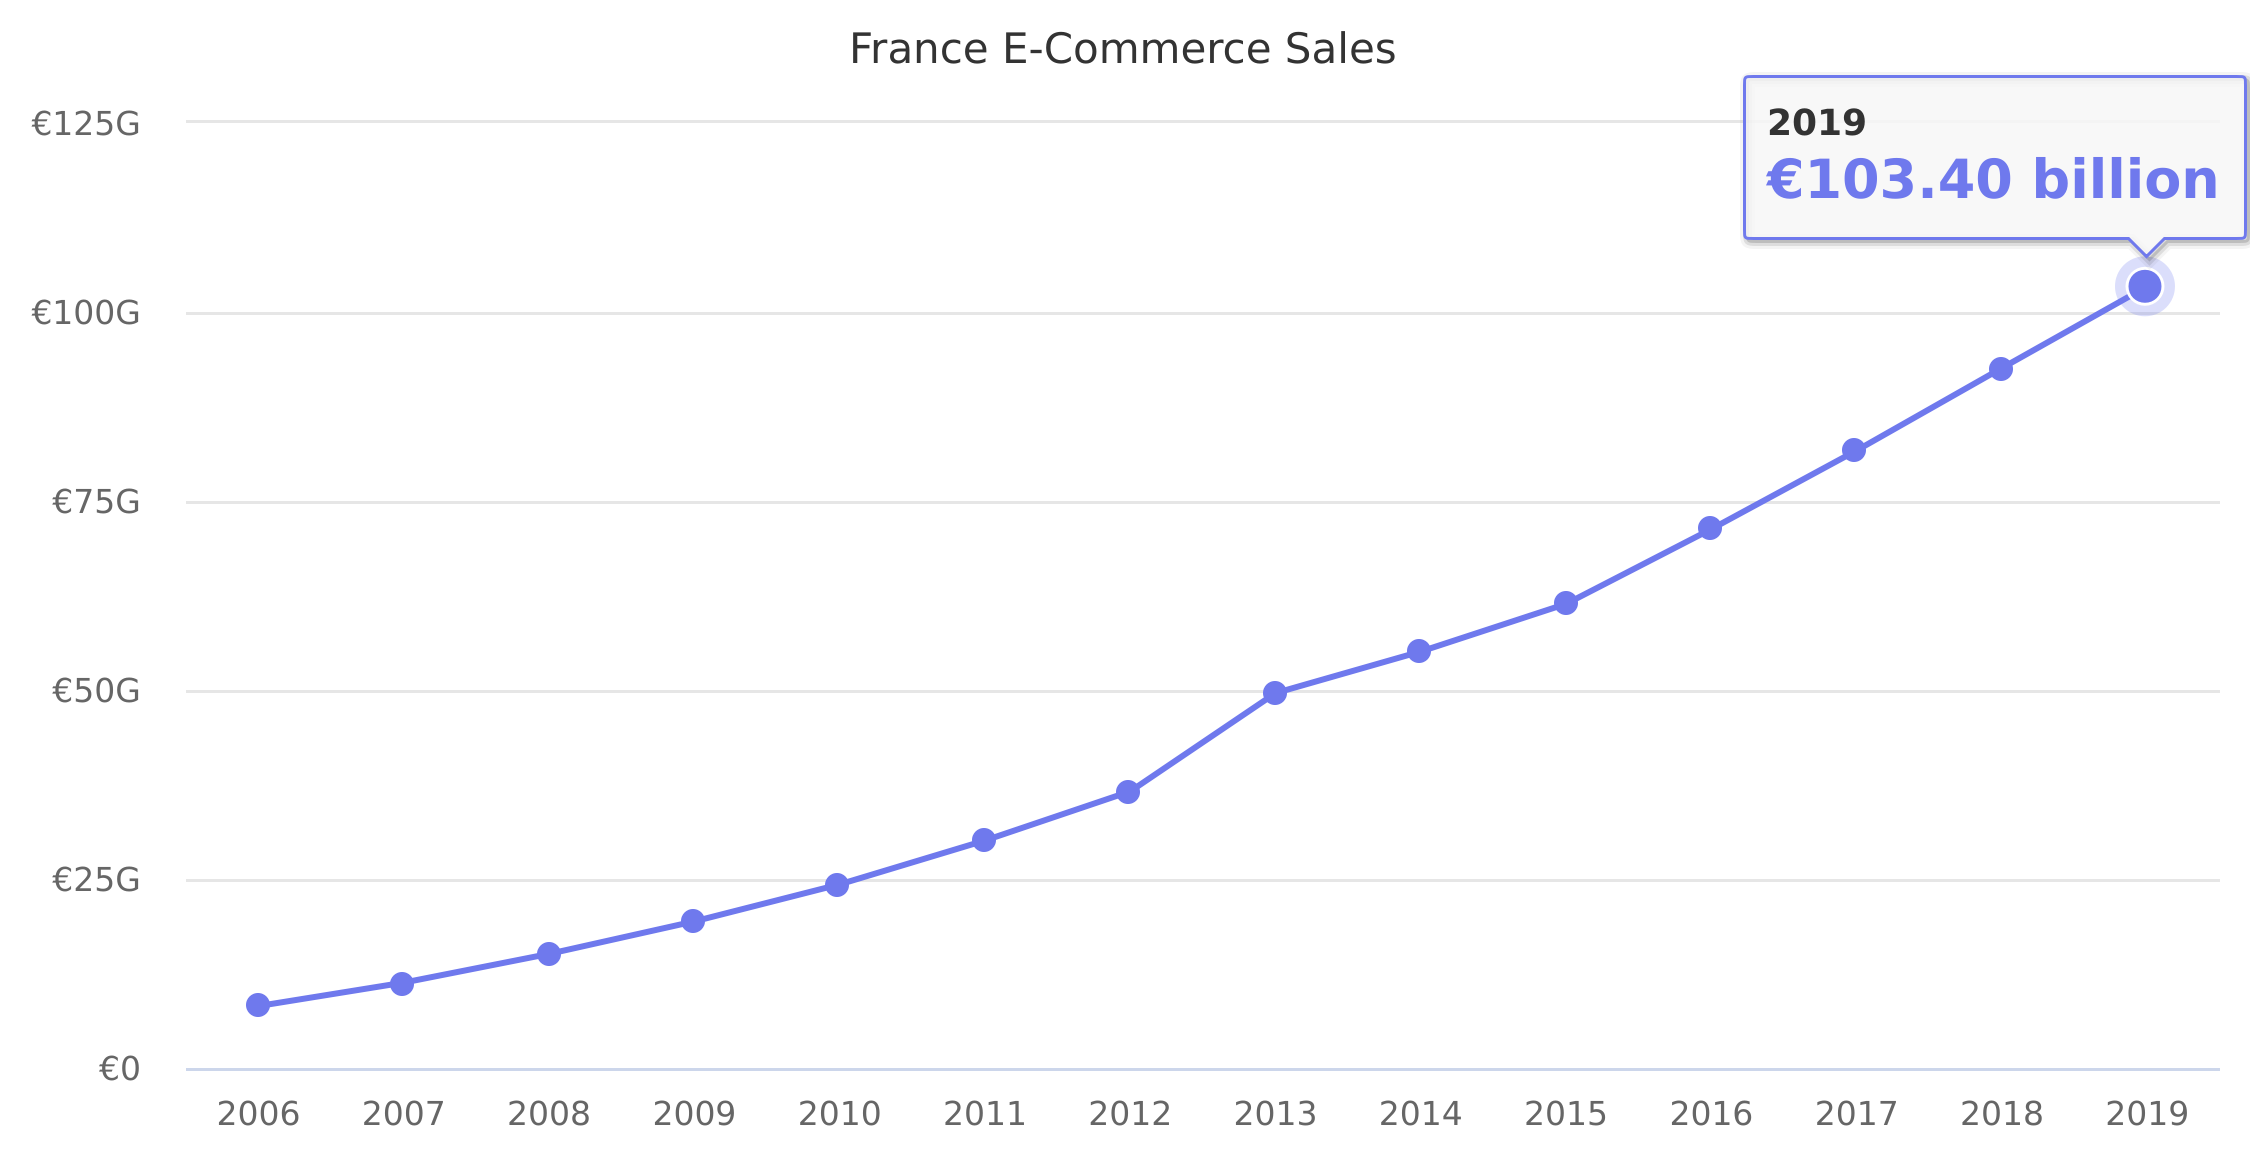 France E-Commerce Sales 2006-2018